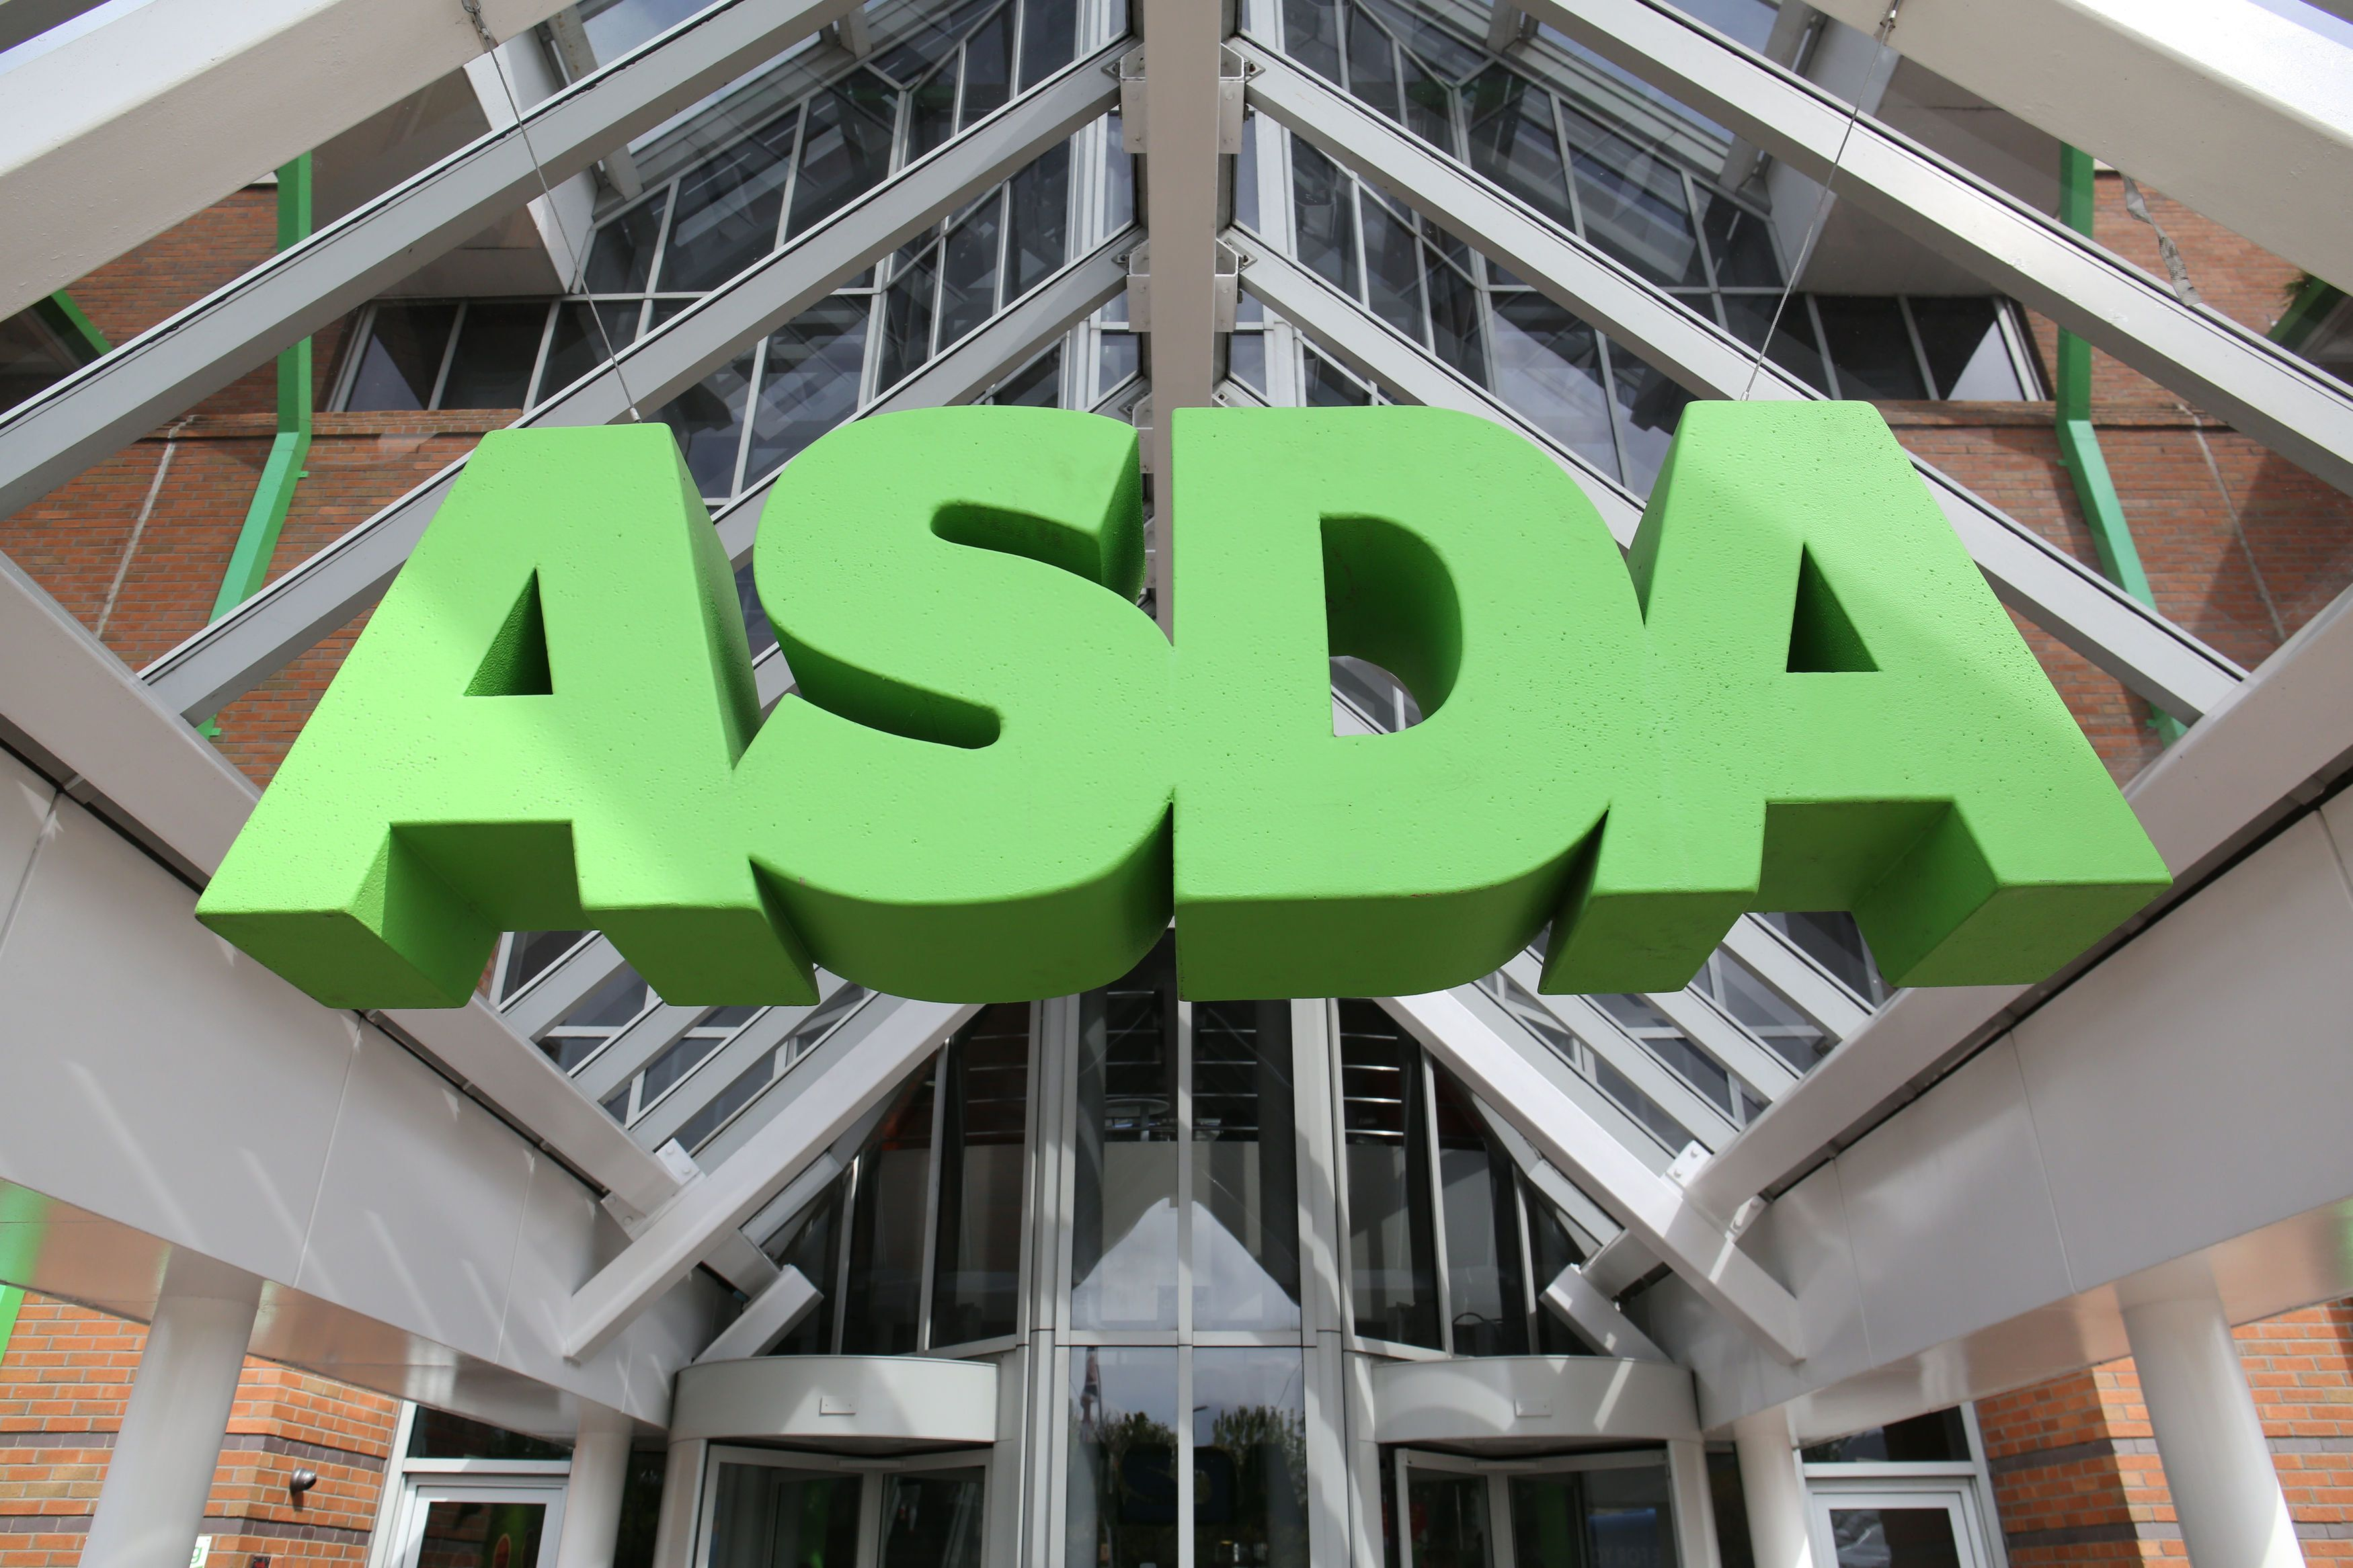 Asda And Lidl Urgently Recall Baked Goods Over Fears They May Contain